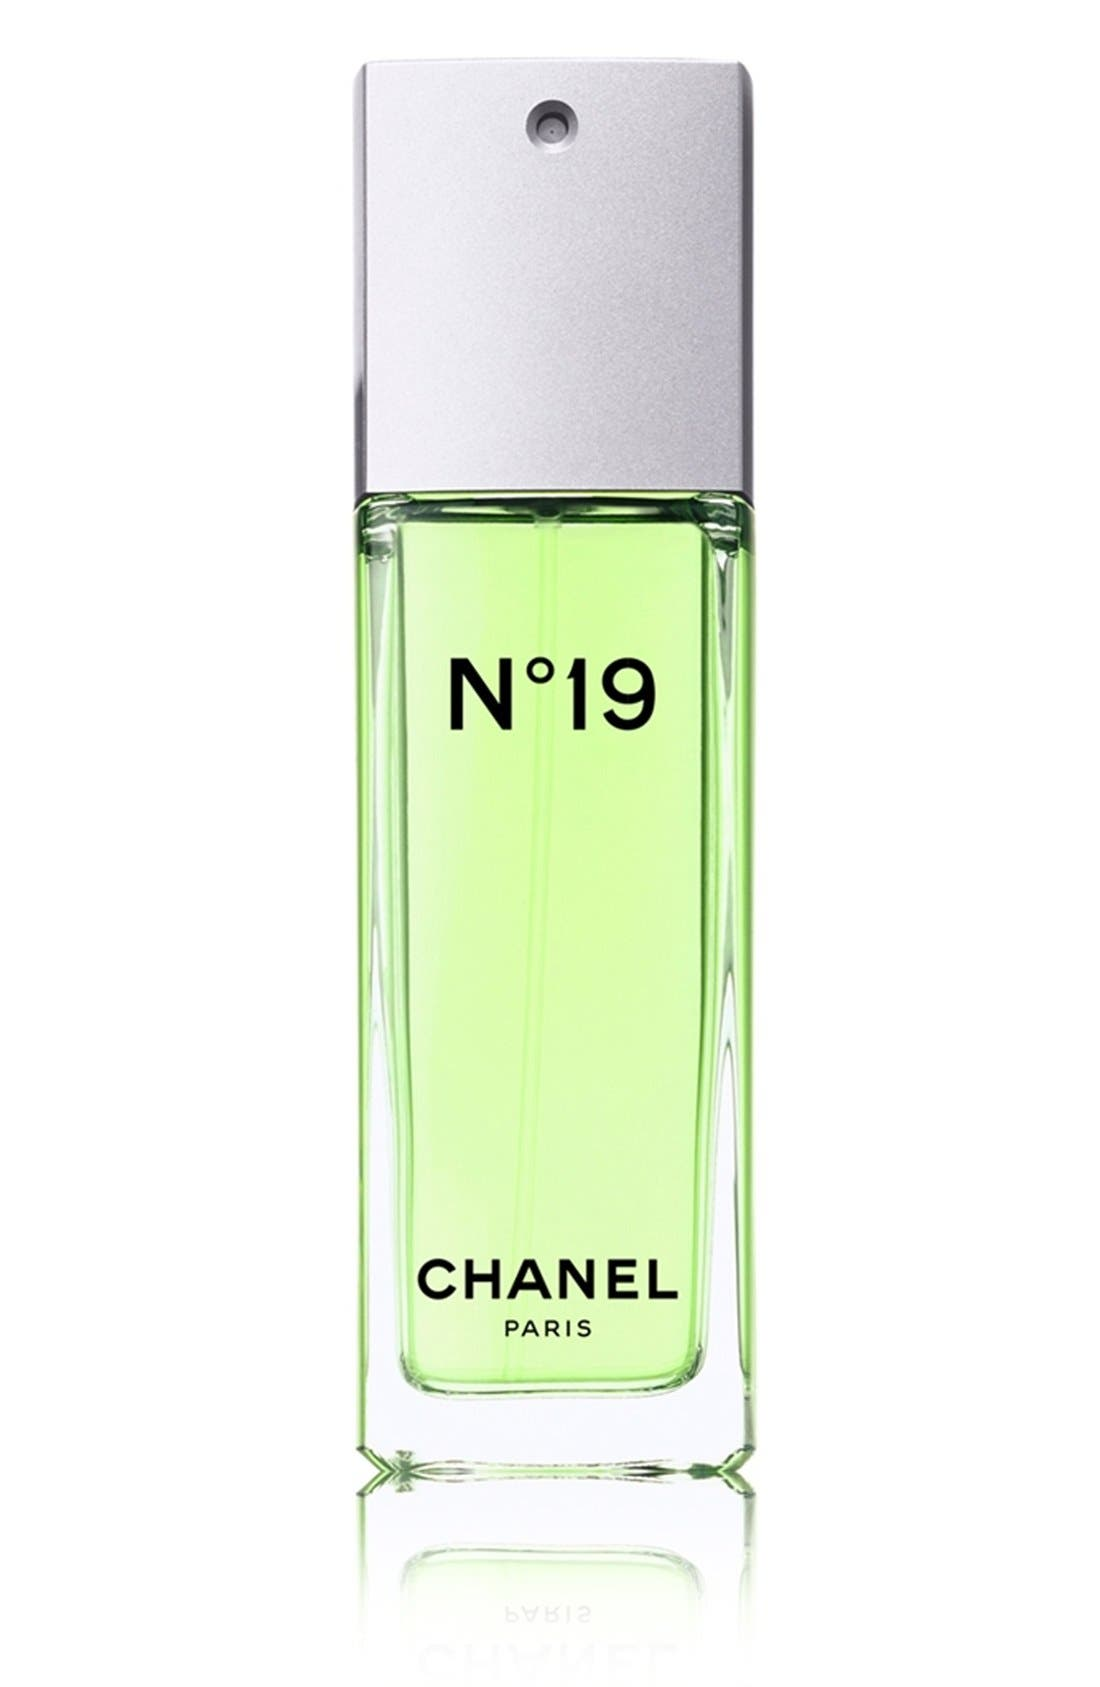 CHANEL N°19 